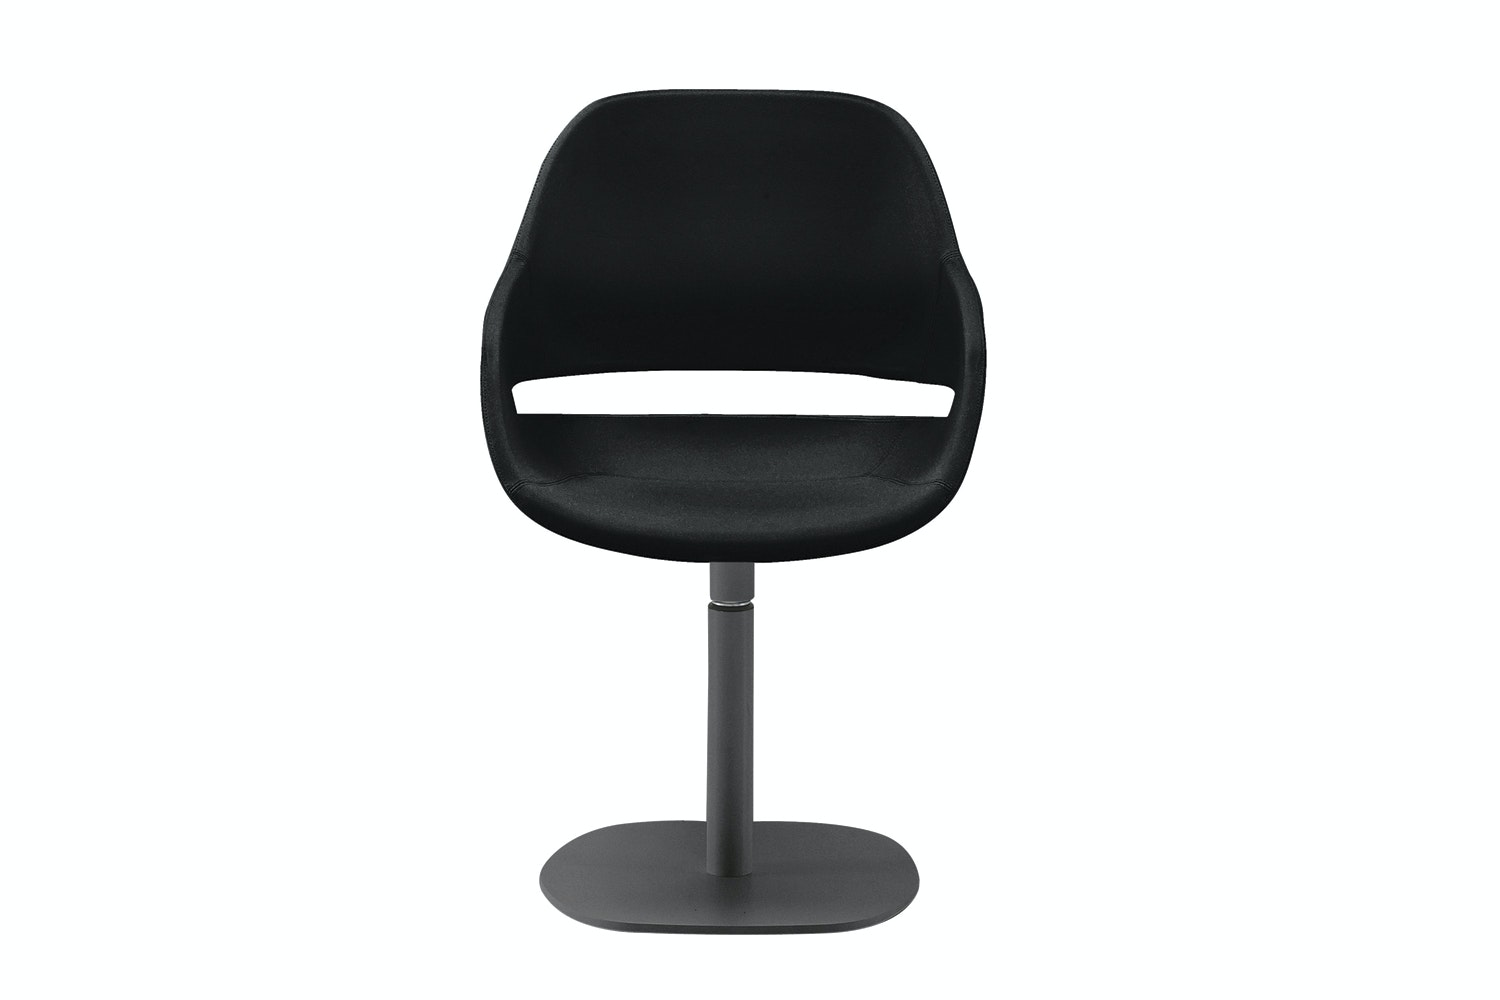 Eva 2269 Chair with Arms by Ora Ito for Zanotta